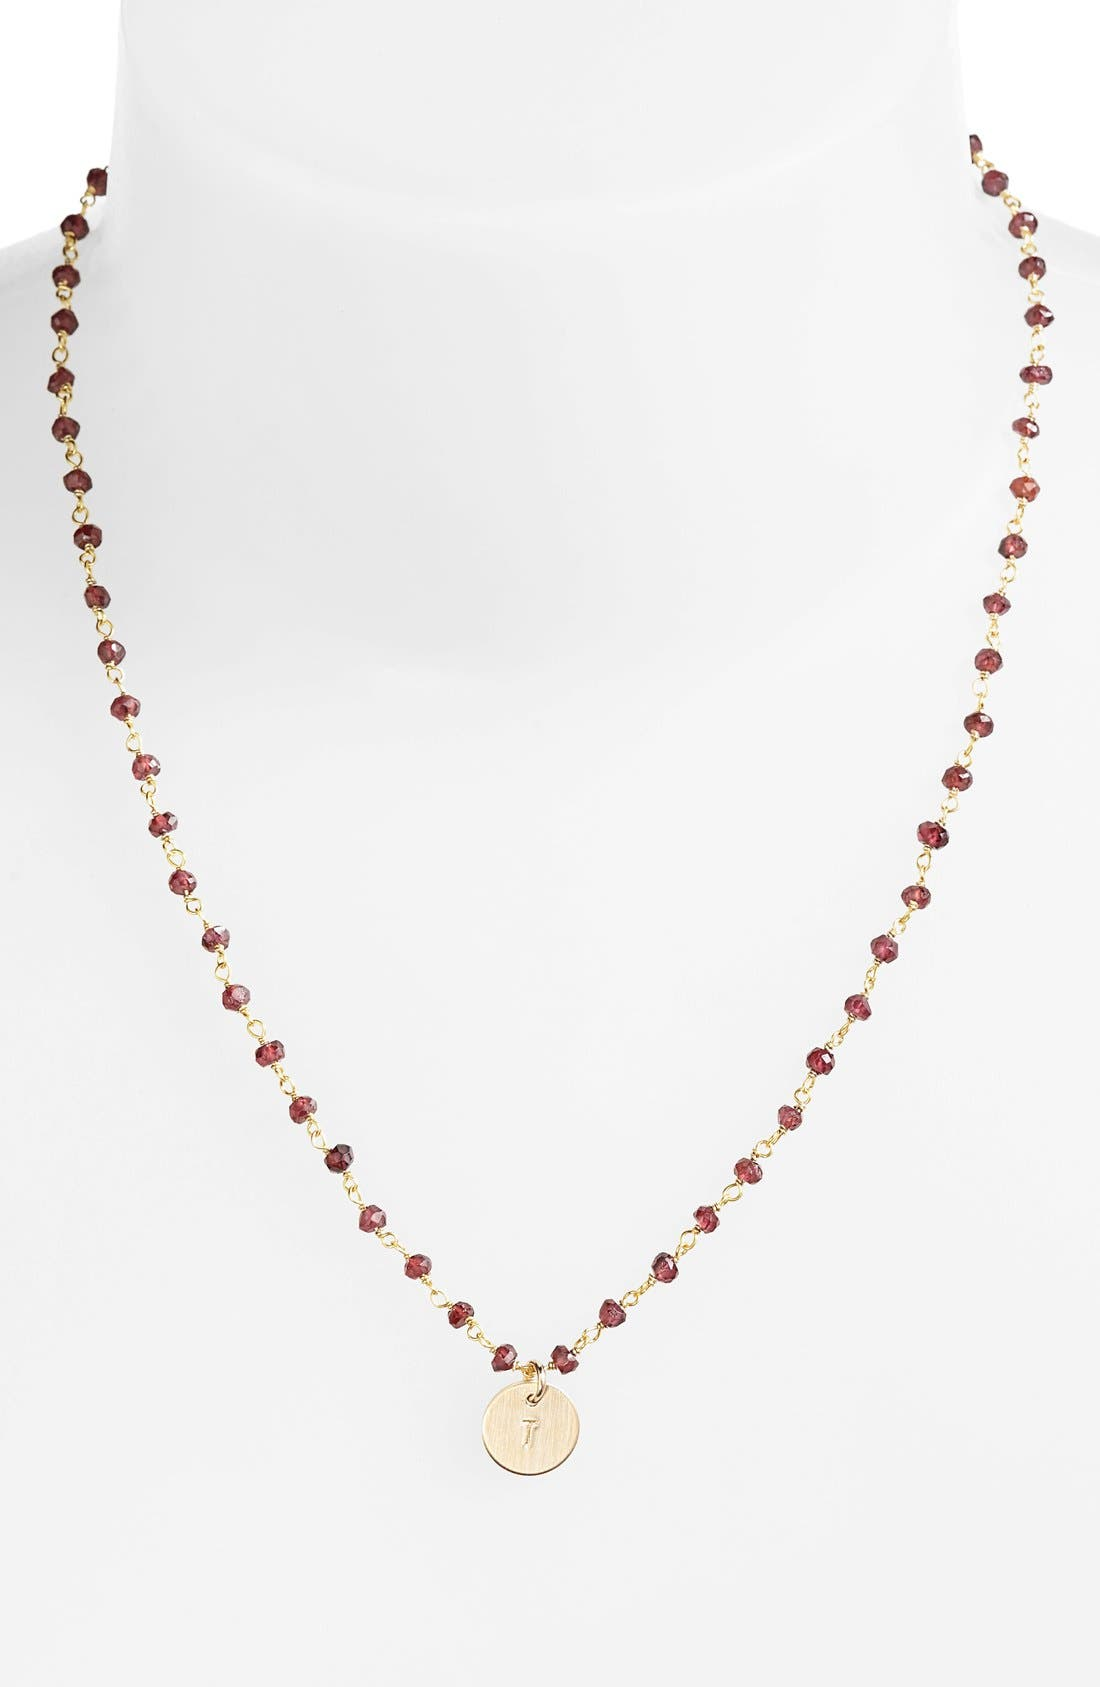 14k-Gold Fill Mini Initial Disc Garnet Chain Necklace,                         Main,                         color, Gold Fill Garnet T